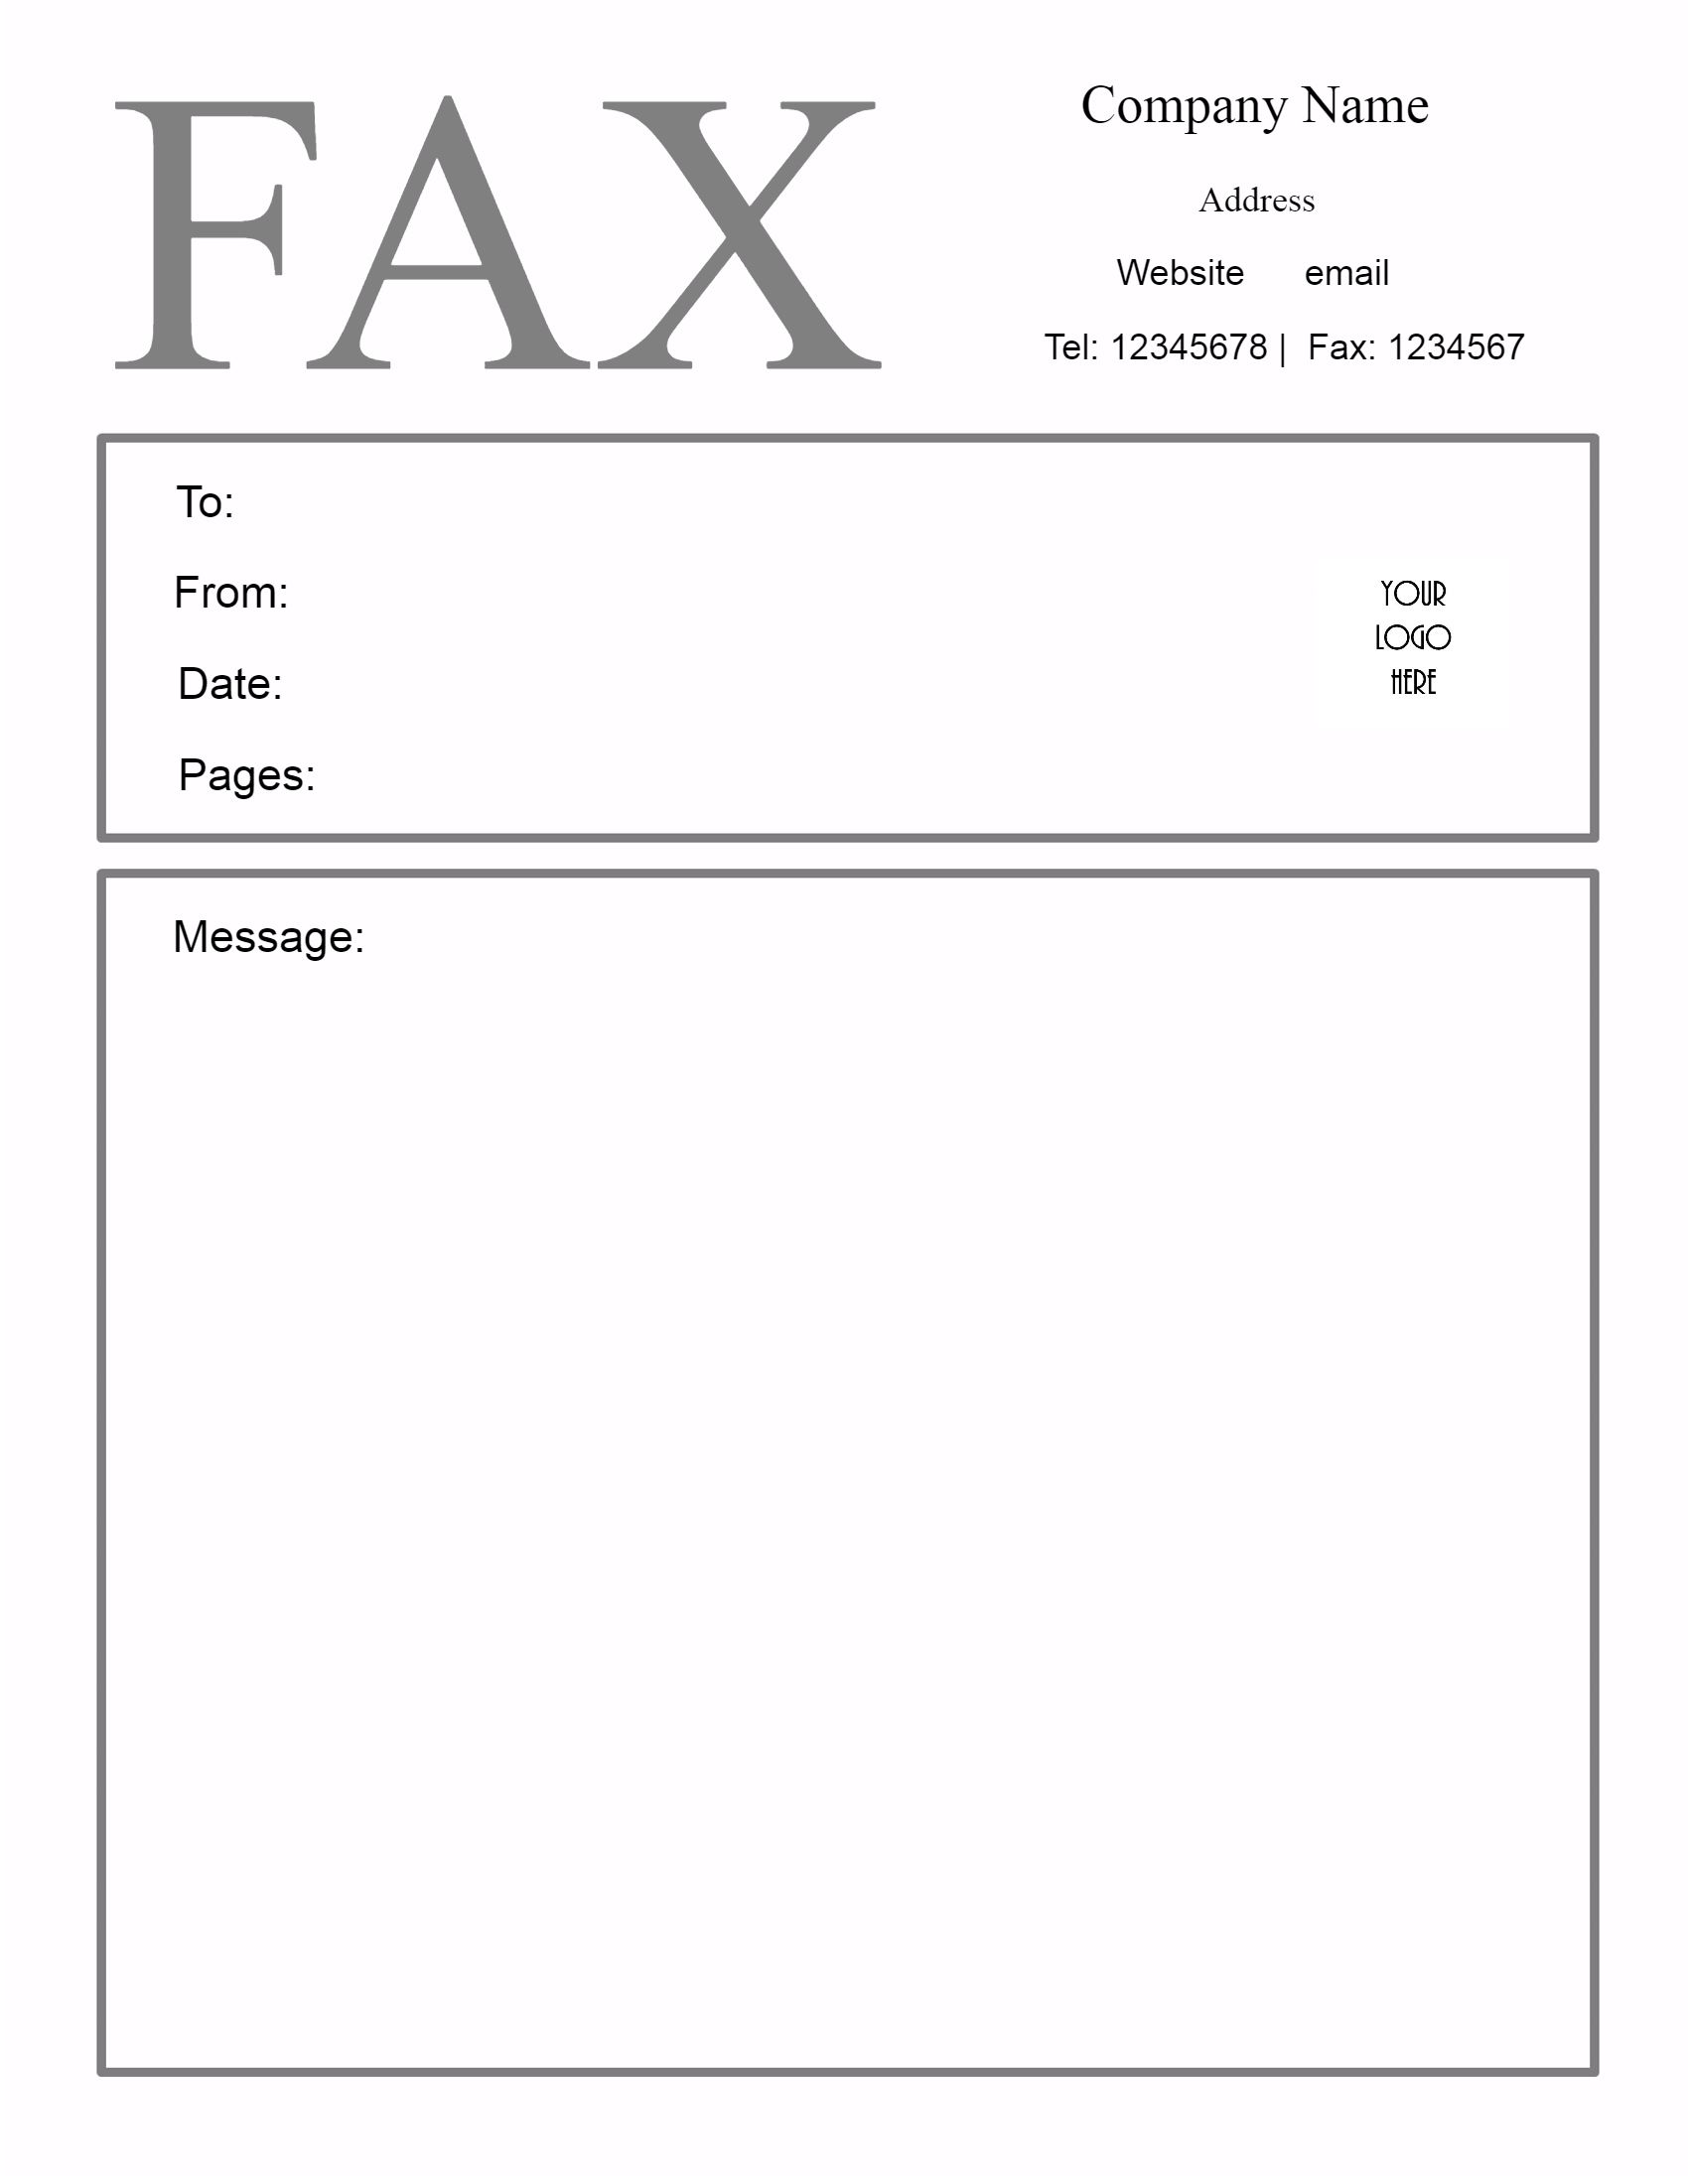 Fax Cover Sheet  Fax Cover Sheet To Print